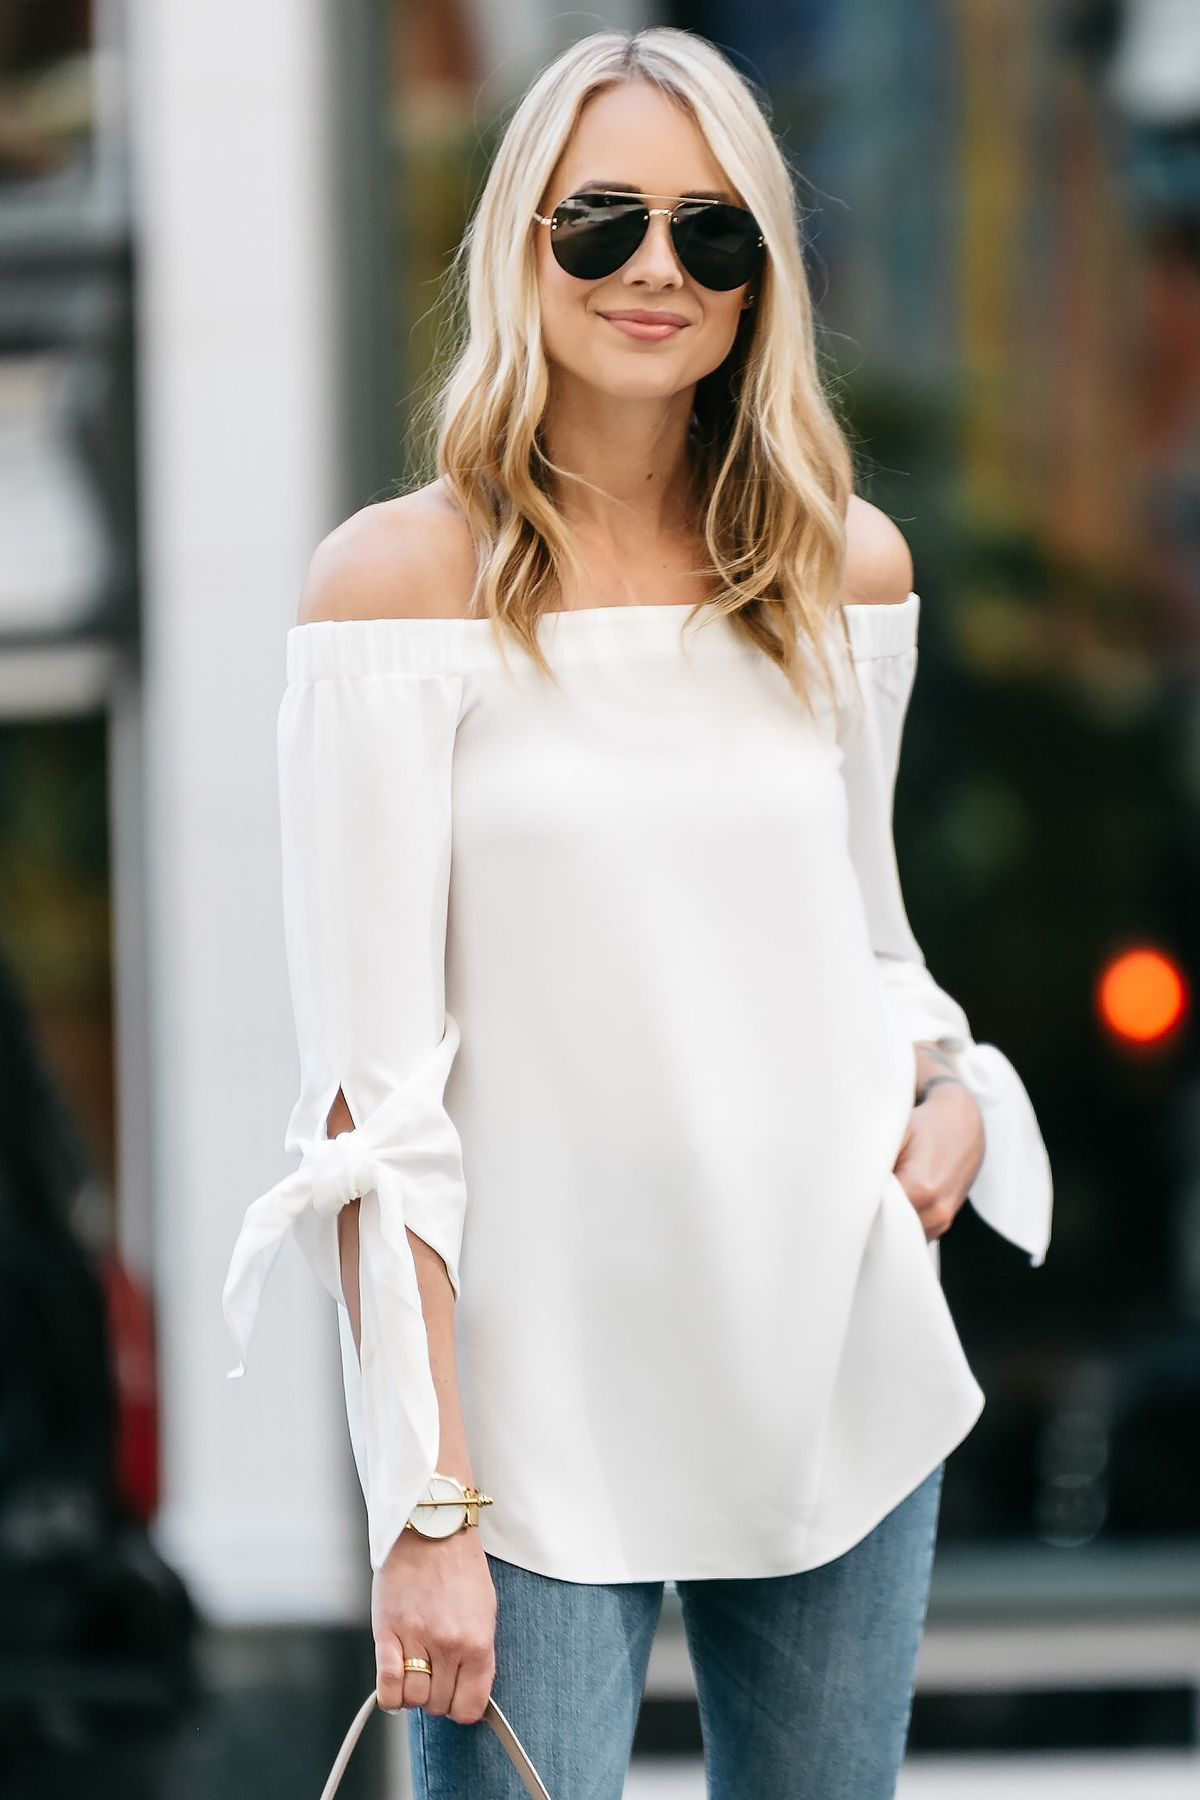 828a70ea8ee Fashion Jackson, Dallas Blogger, Fashion Blogger, Street Style, Club Monaco  Sophiya Top, White Off-the-Shoulder Top, Topshop Jamie Jeans, Denim Ripped  ...